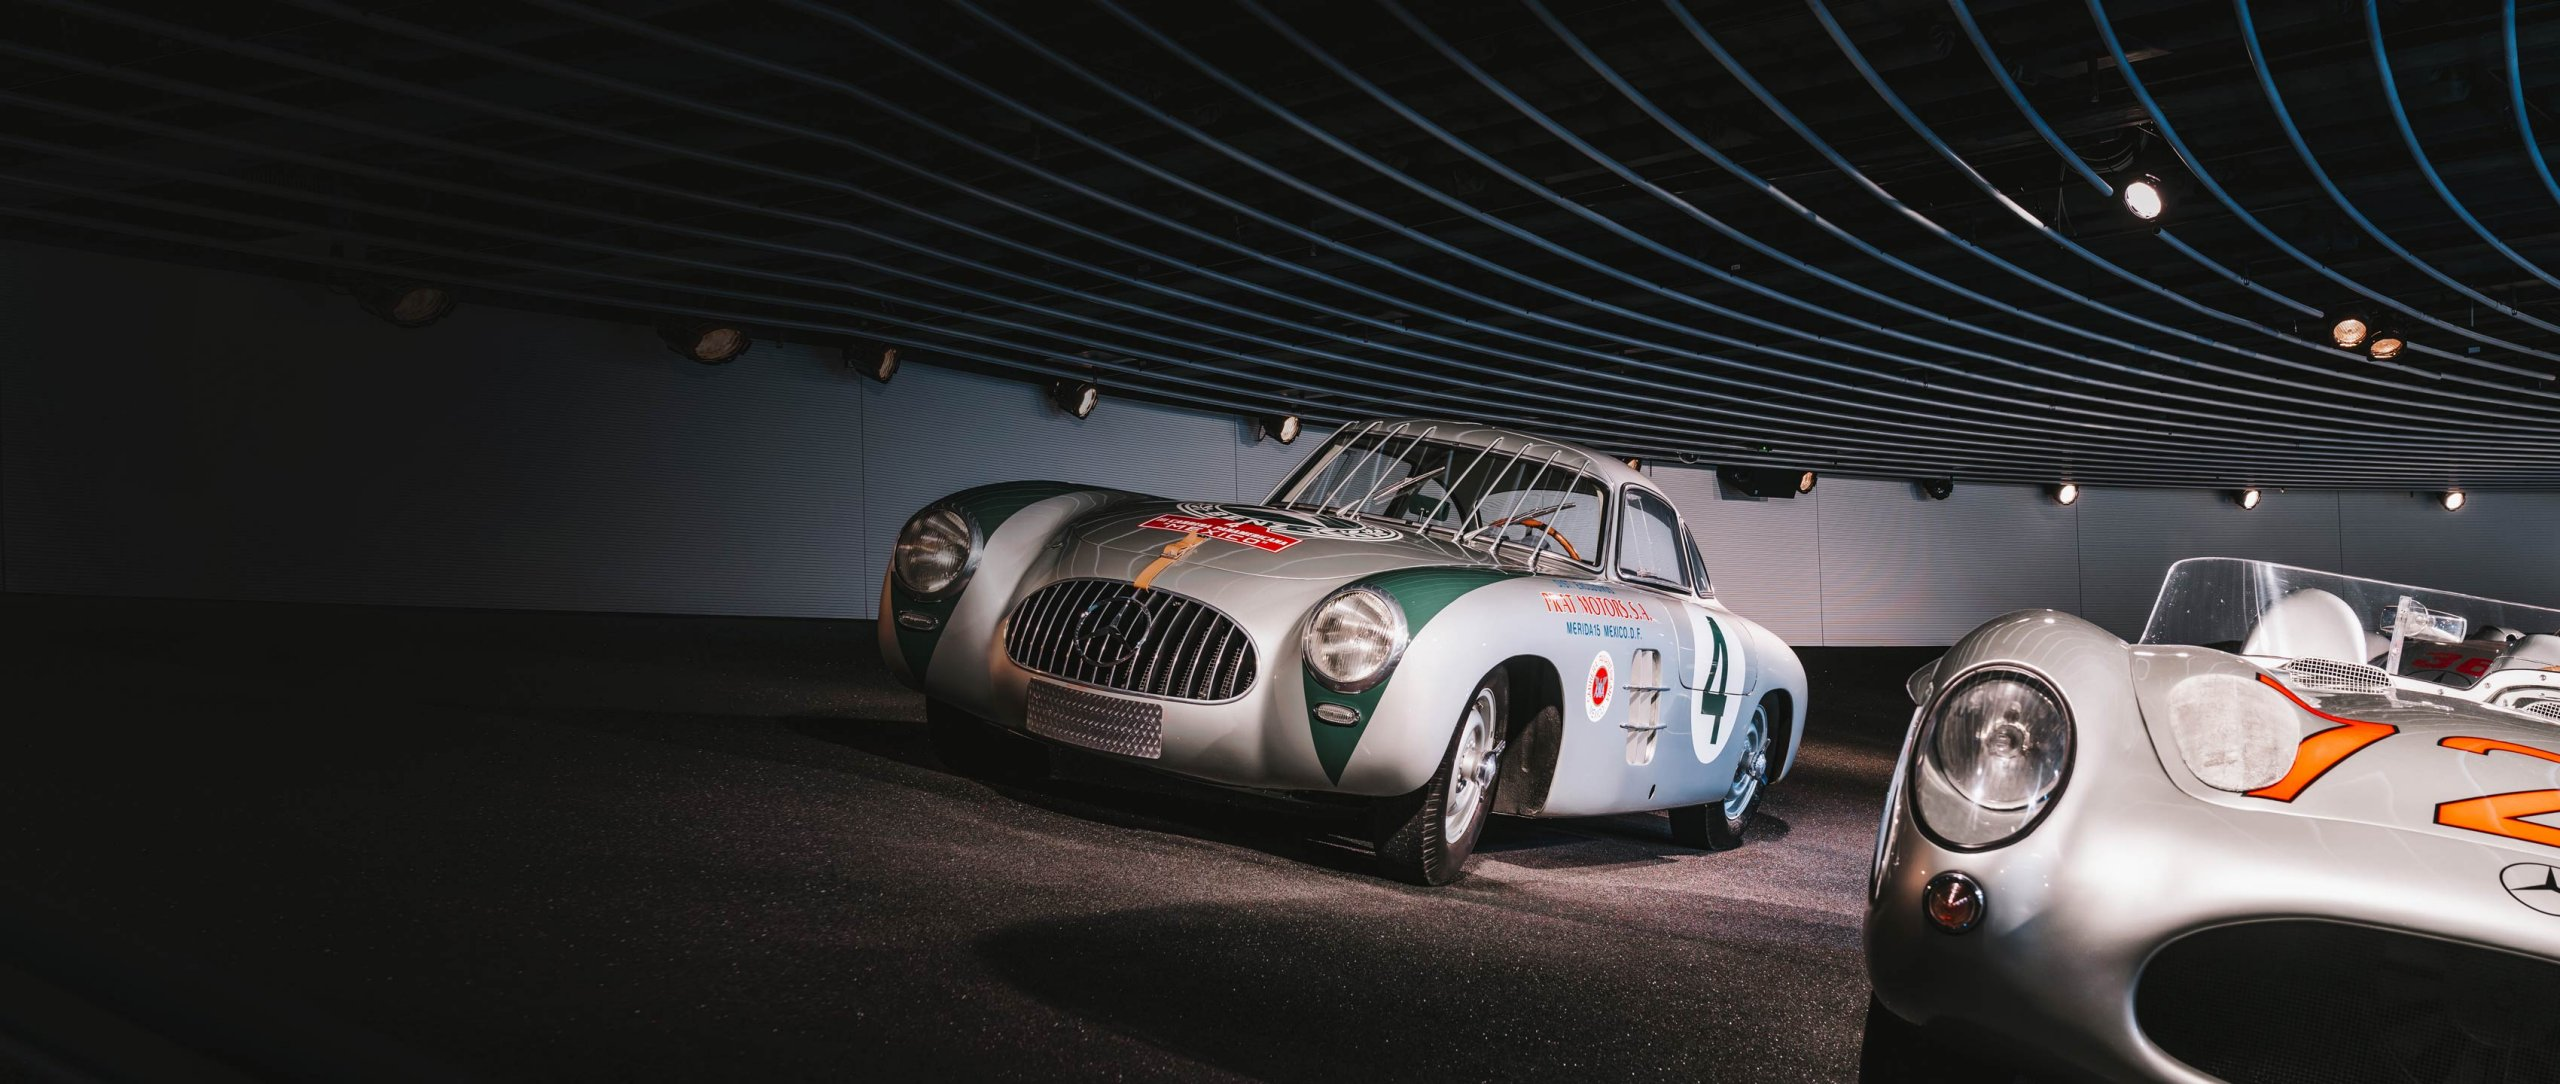 Mercedes-Benz 300 SL racing sports car.